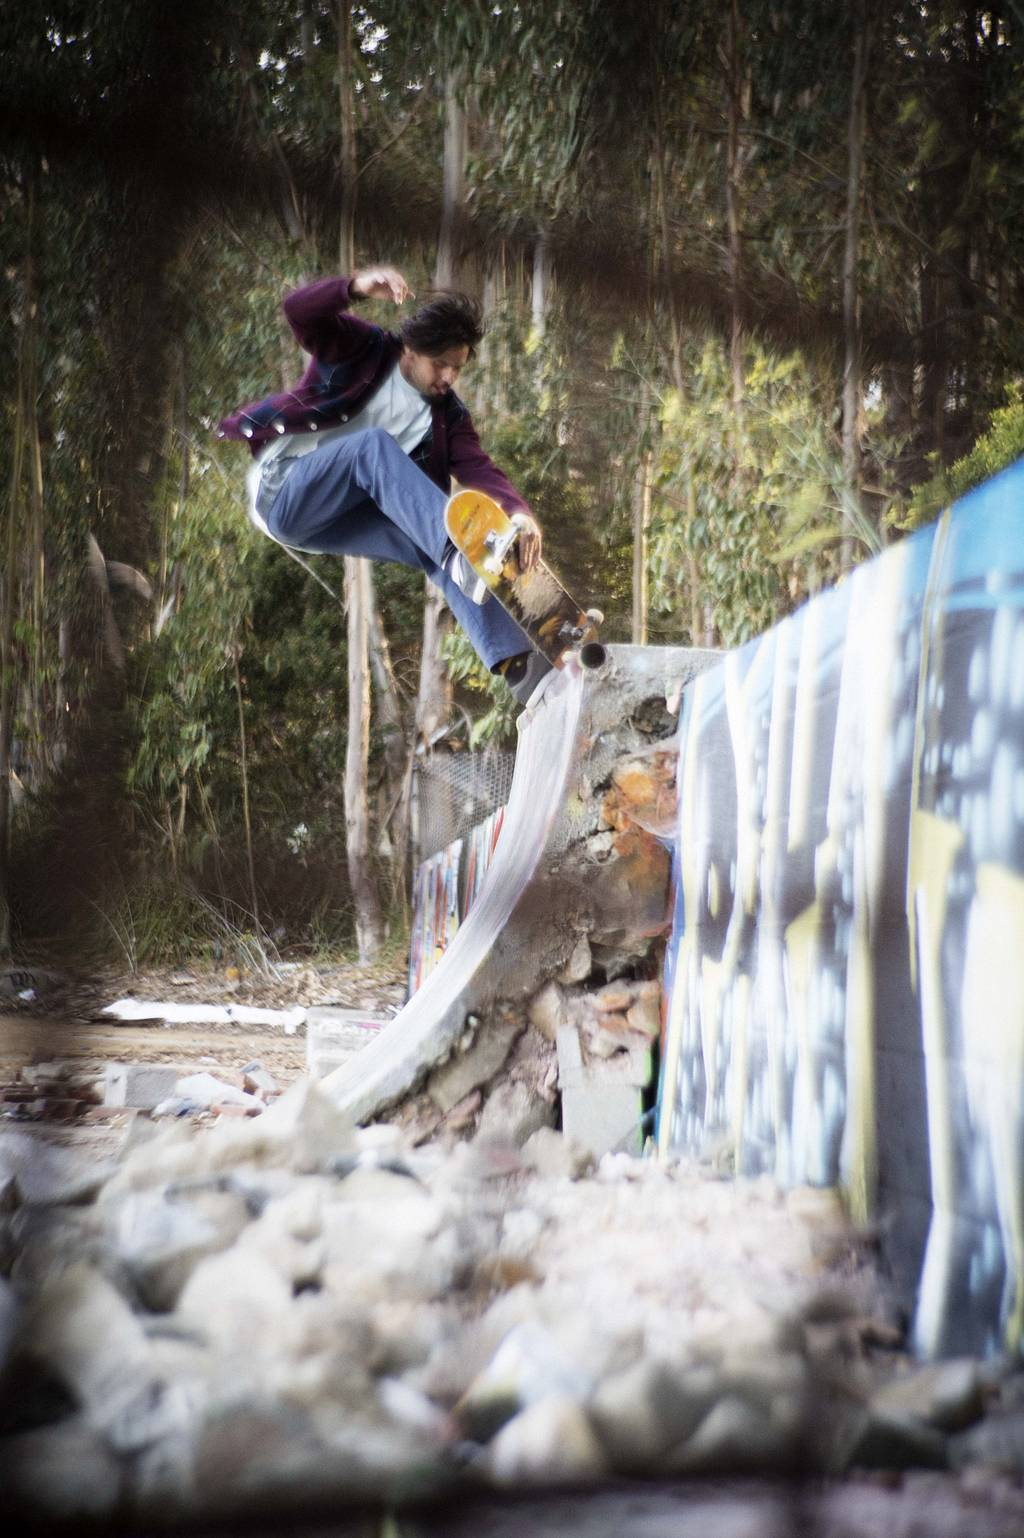 Skate Photographer Joe Brook Shoots with the Petzval Lens